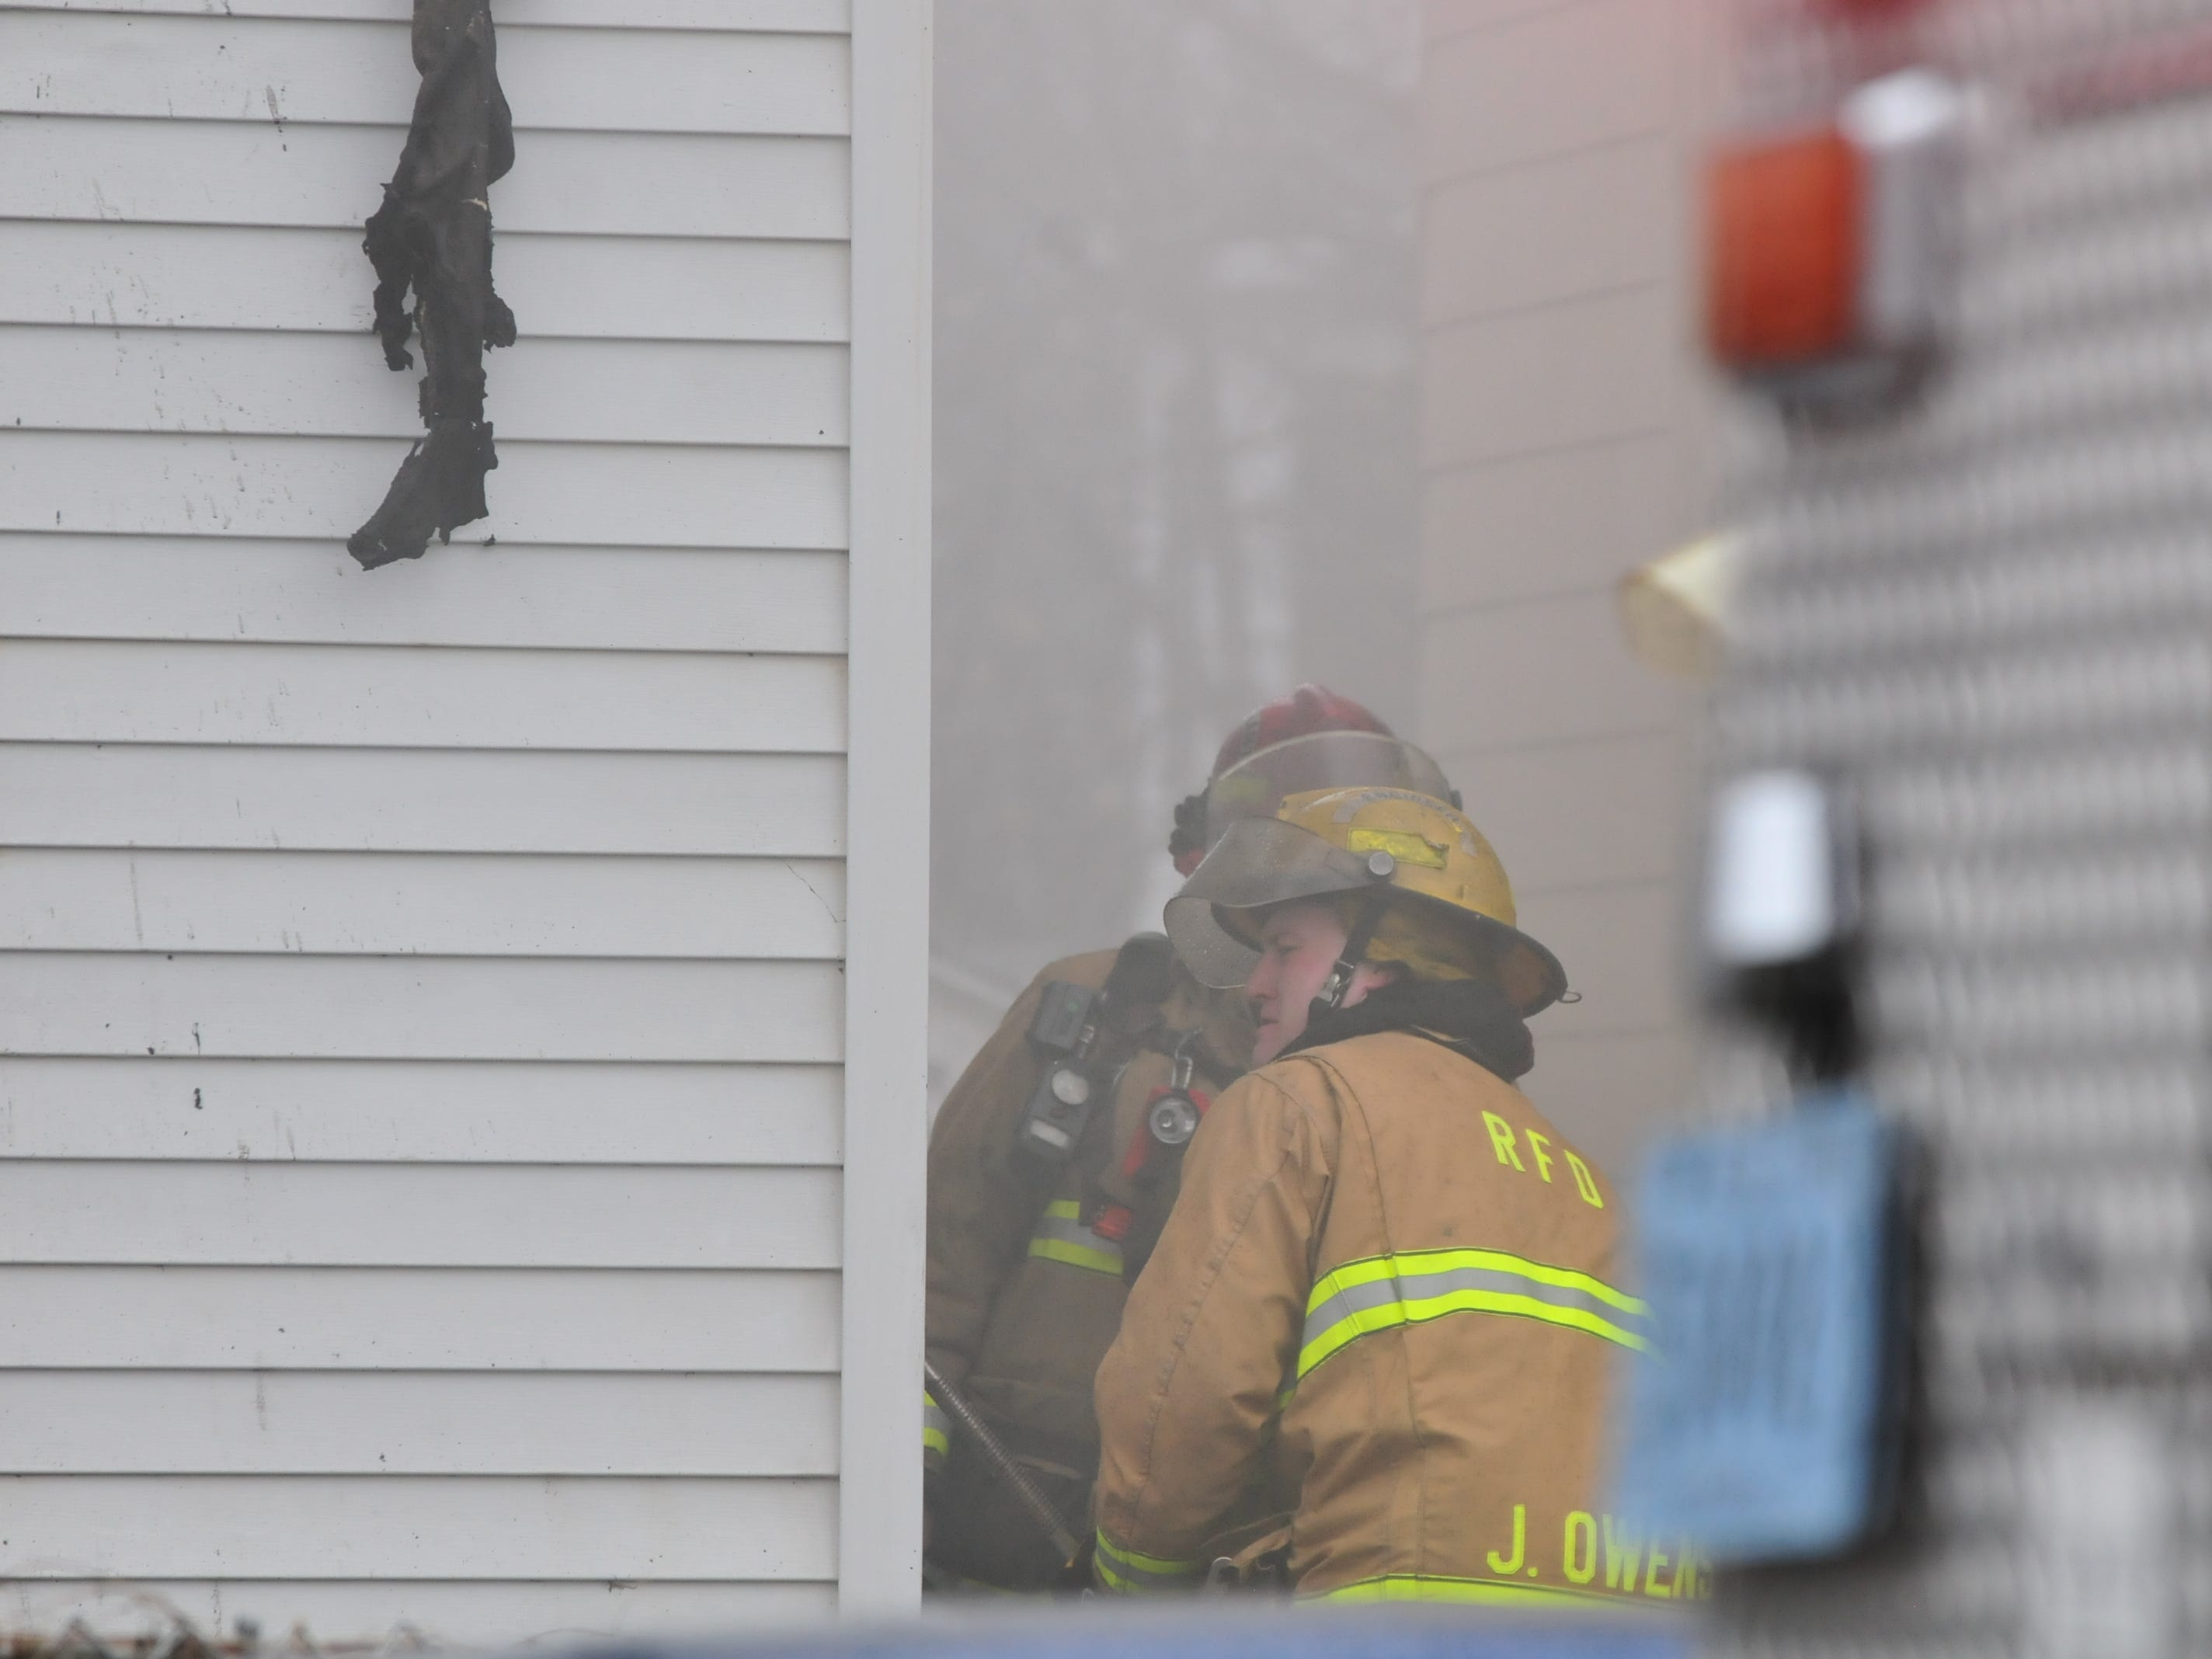 Richmond Fire Department personnel uses a crowbar on the side of 112 N. 18th St. during Wednesday's fire.